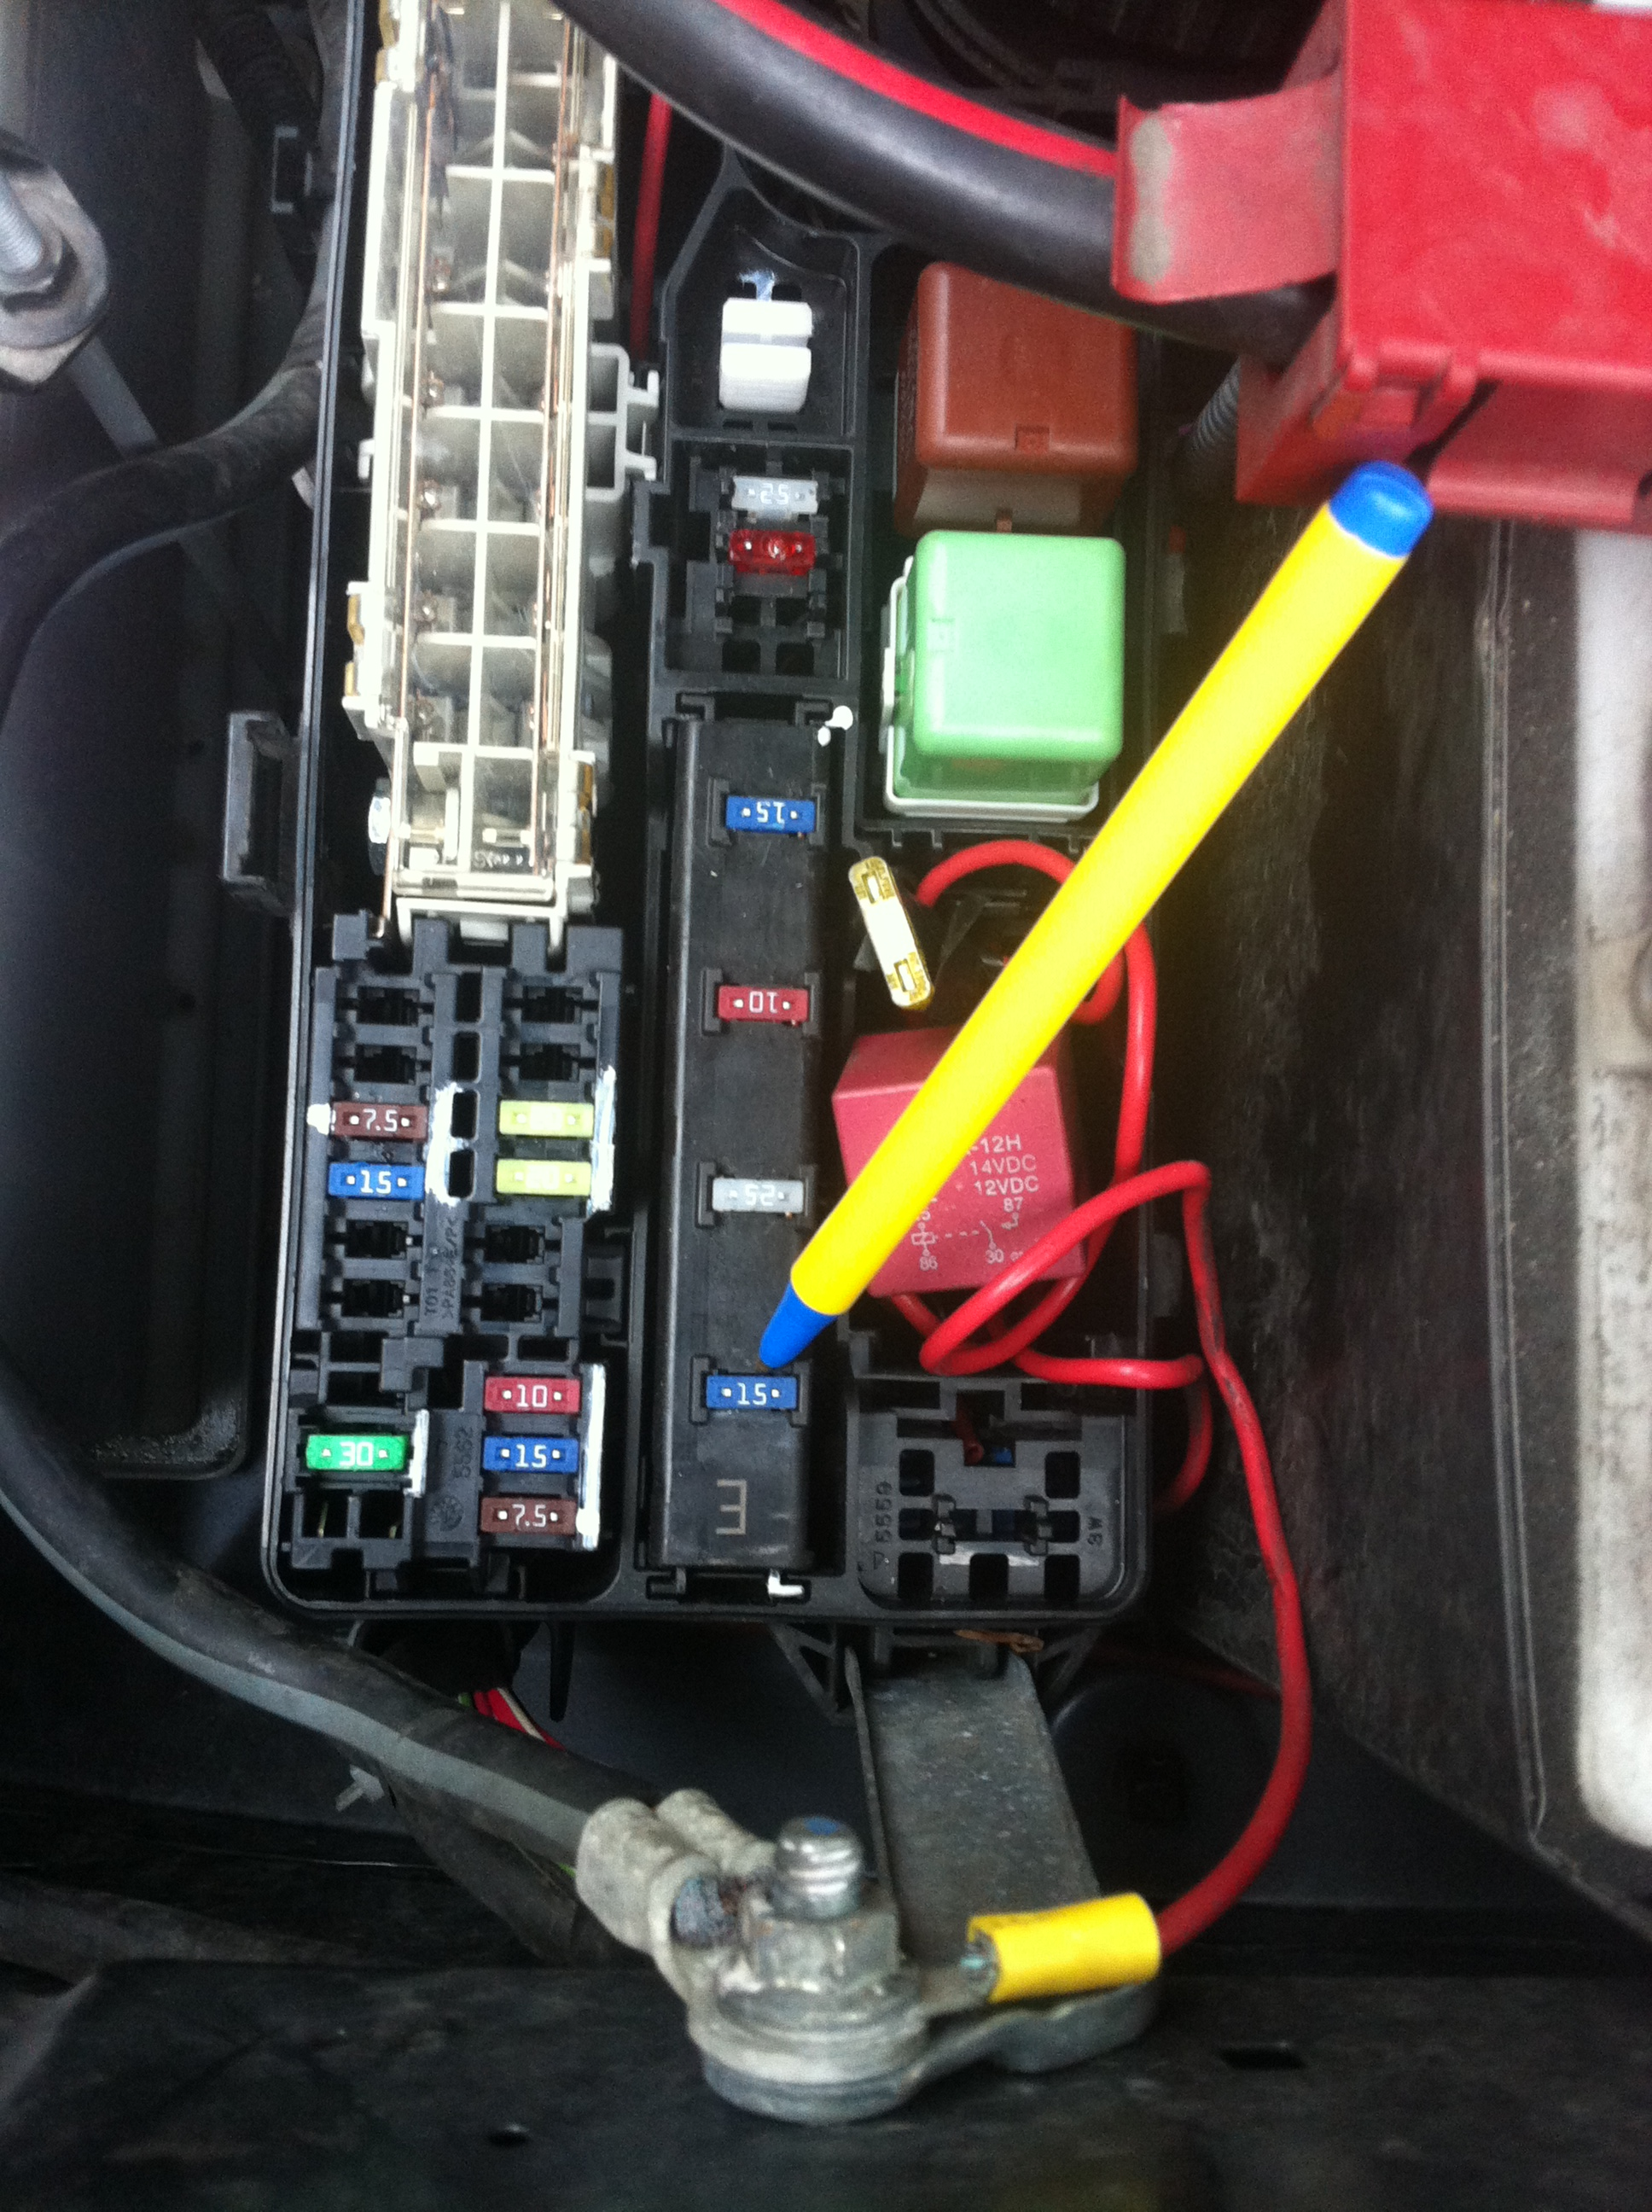 2007 prius fuse box diagram auto electrical wiring diagram rh psu edu co fr  bitoku me